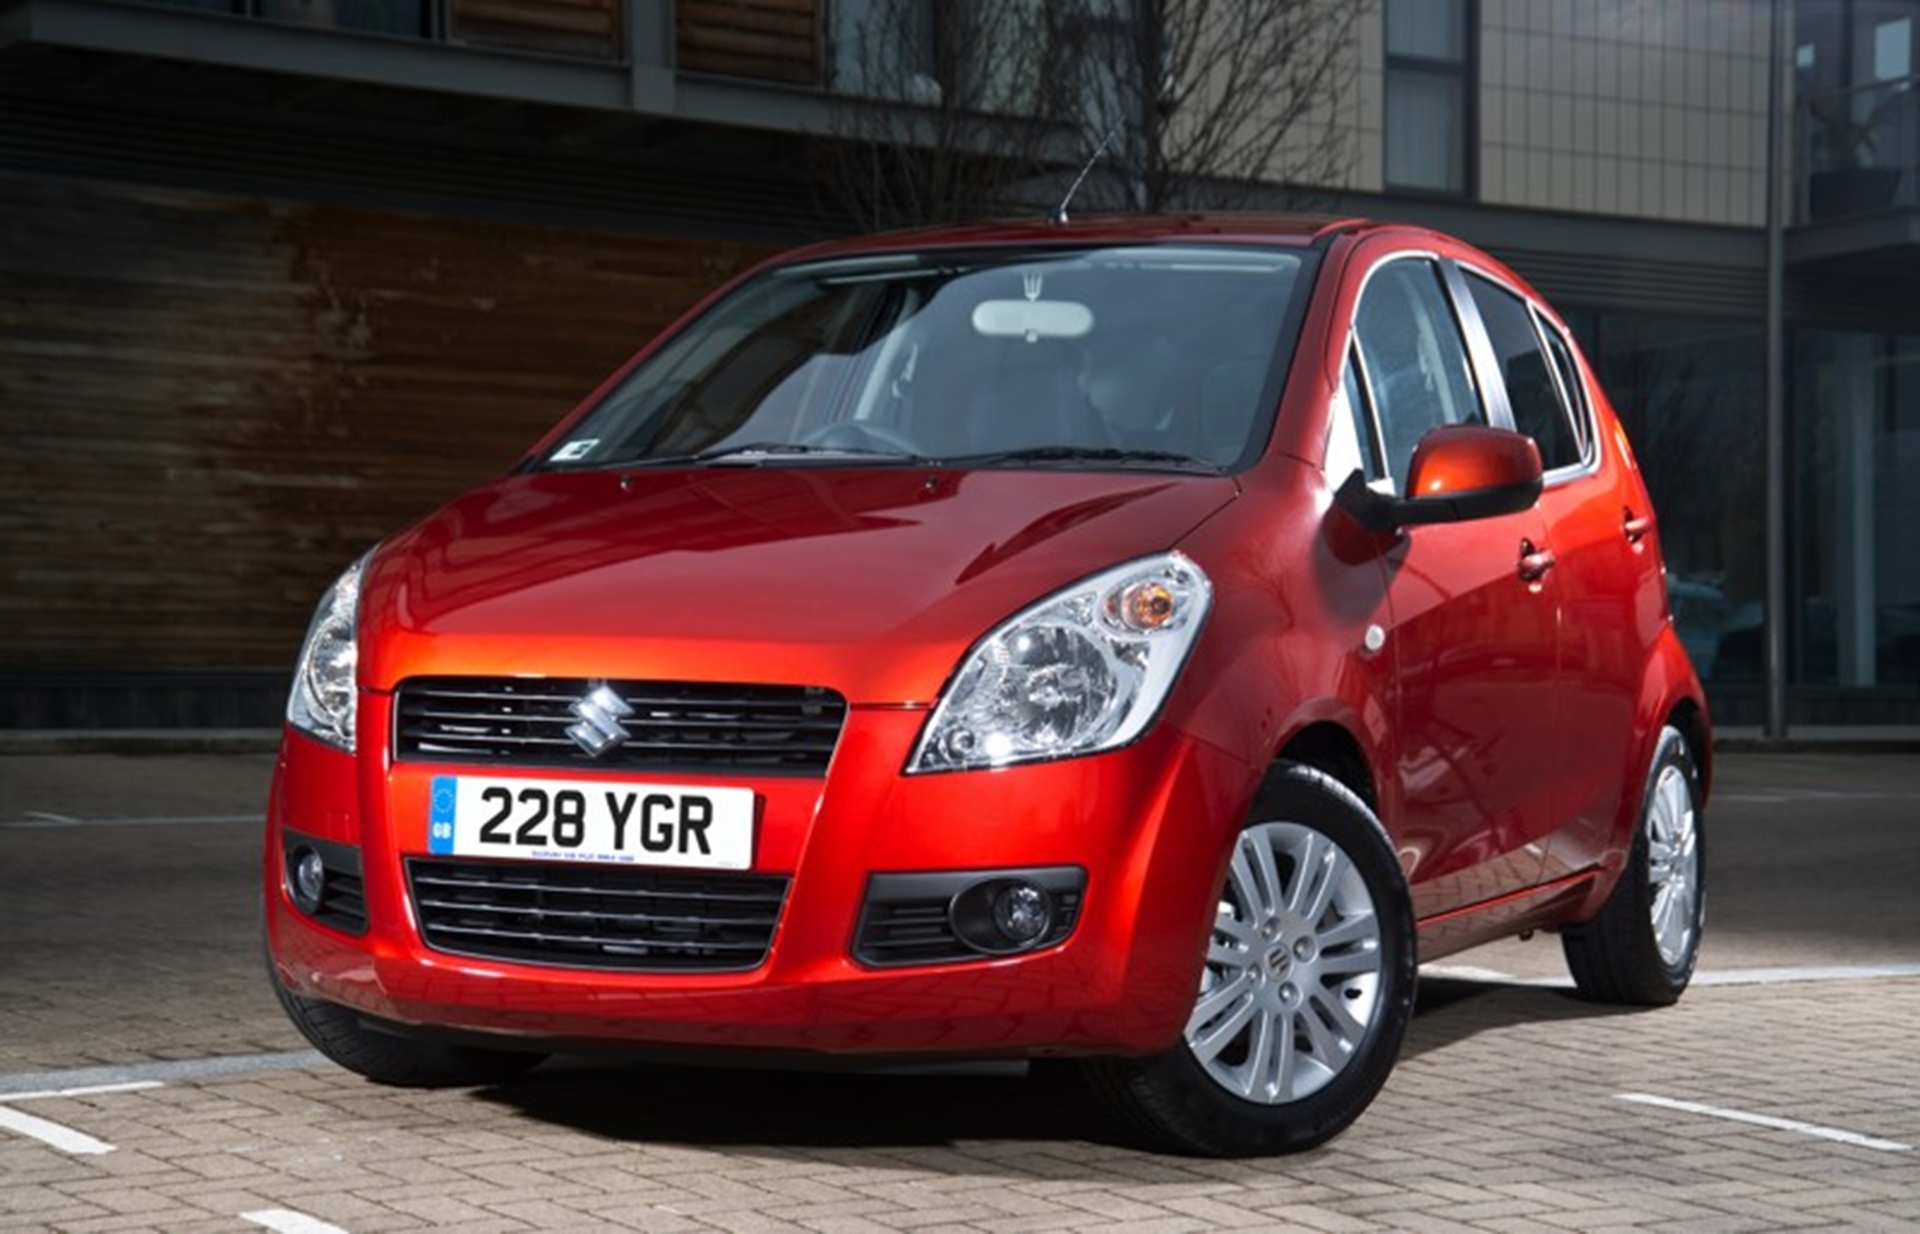 Suzuki - Big in Small Cars - New Year Finance Offers